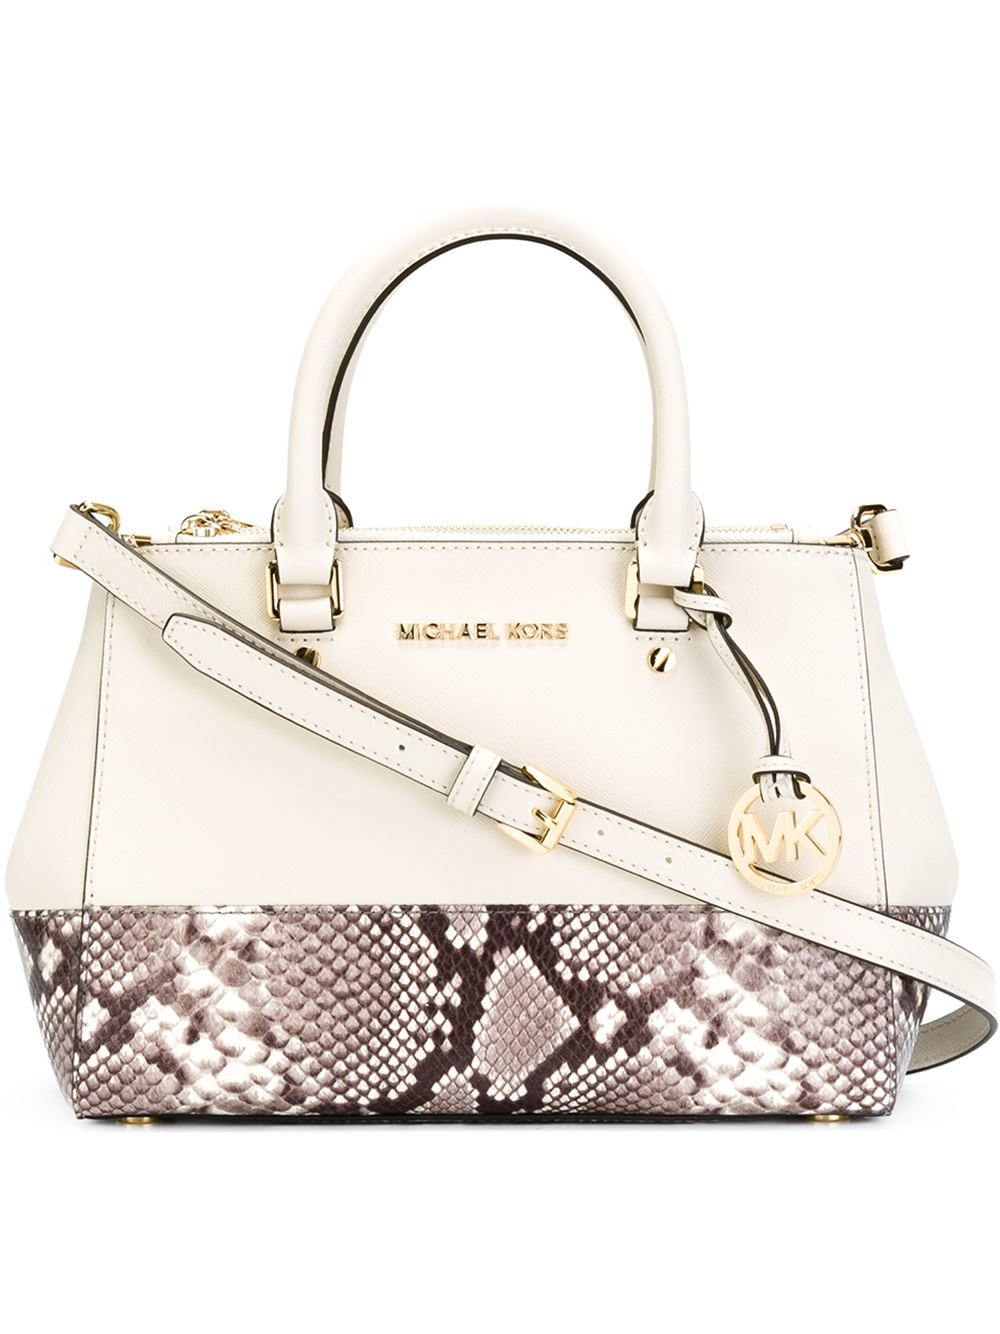 7ddca2071f1d2 ... free shipping lyst michael michael kors dillon tote bag in natural  4b227 5c259